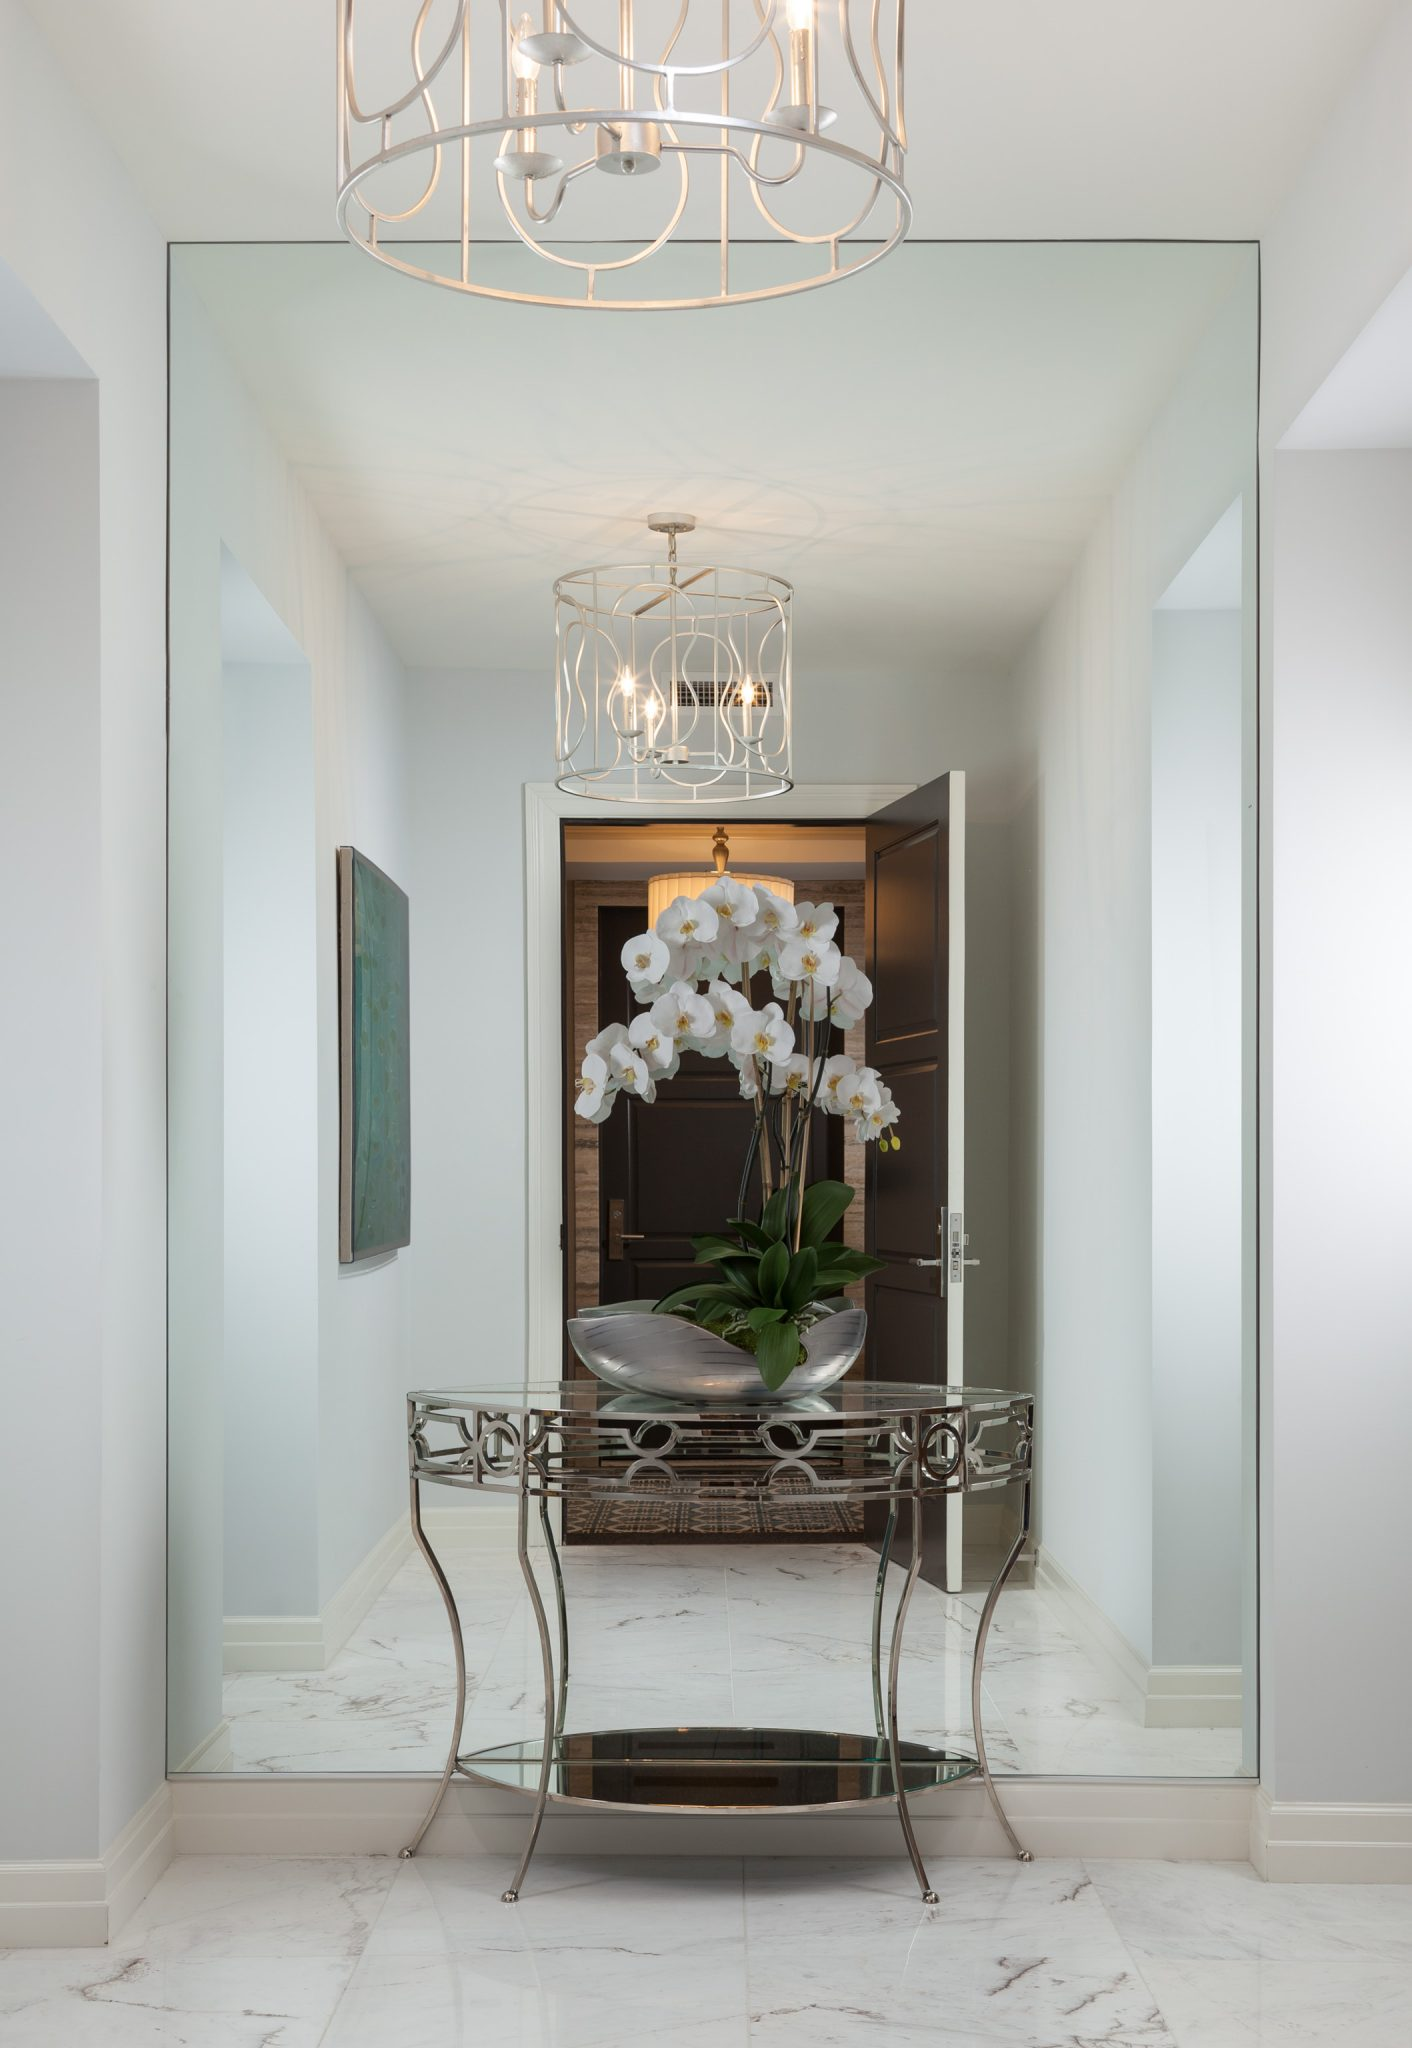 Sargent Architectural Photography and J/Howard Design Inc